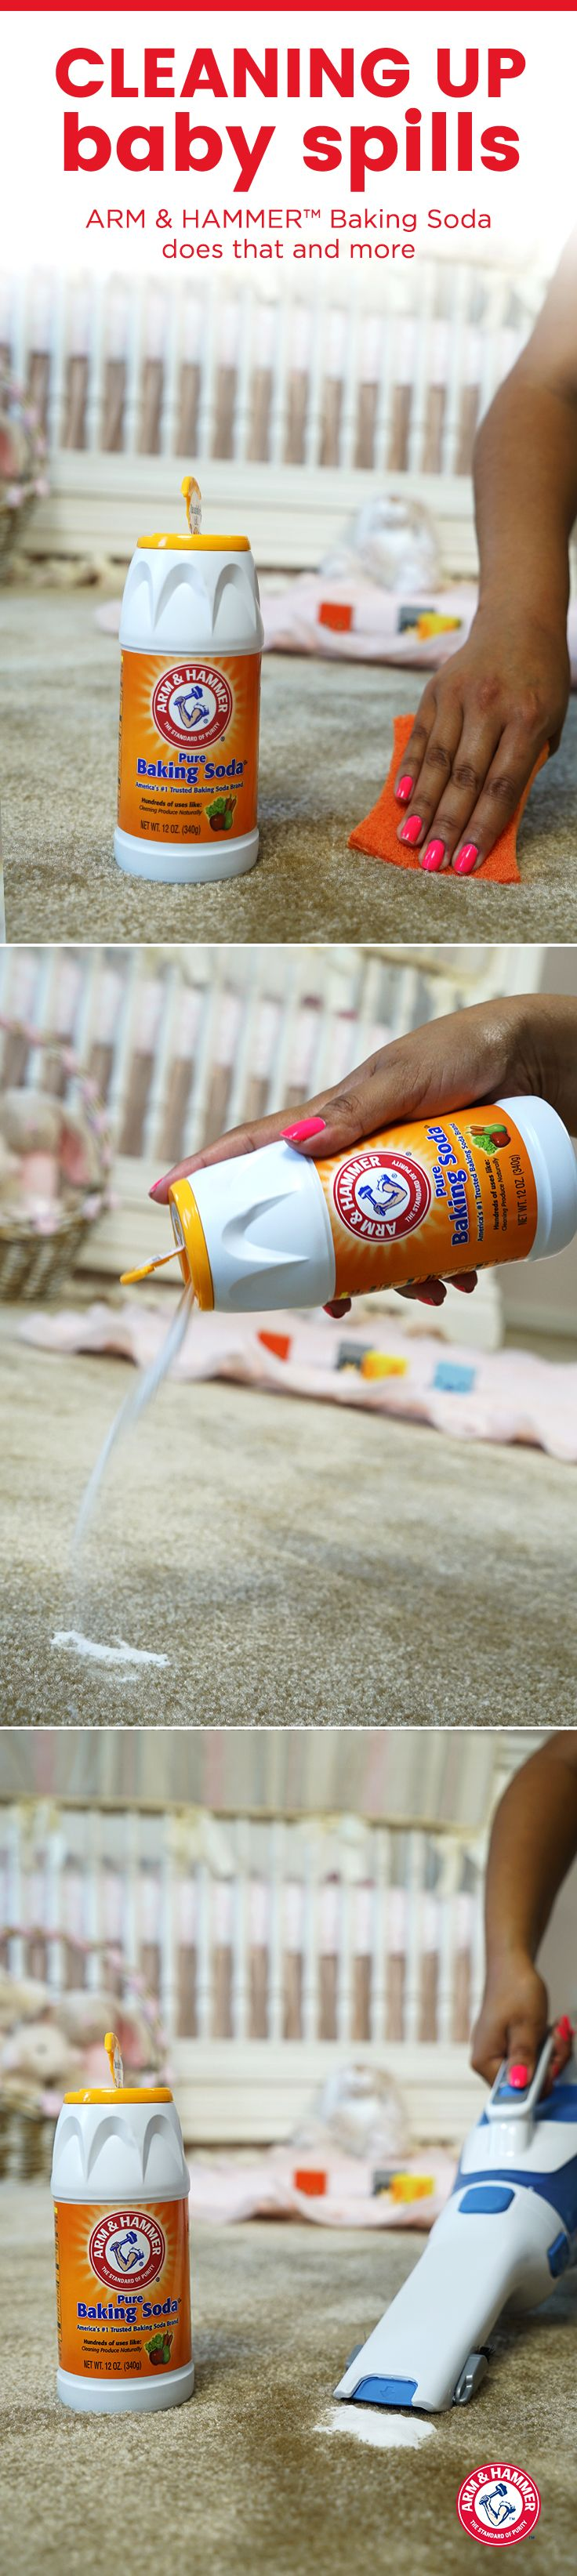 With ARM & HAMMER™ Baking Soda, there's no need to cry over spilled milk or other baby spills. To clean and deodorize baby accidents on carpets, first soak up as much of the spill as possible and clean the stain according to the carpet manufacturer's directions; then allow to dry. Once completely dry, sprinkle baking soda liberally and let sit for 15 minutes (HINT: Check for color fastness first before applying baking soda). Then vacuum carpet as usual.